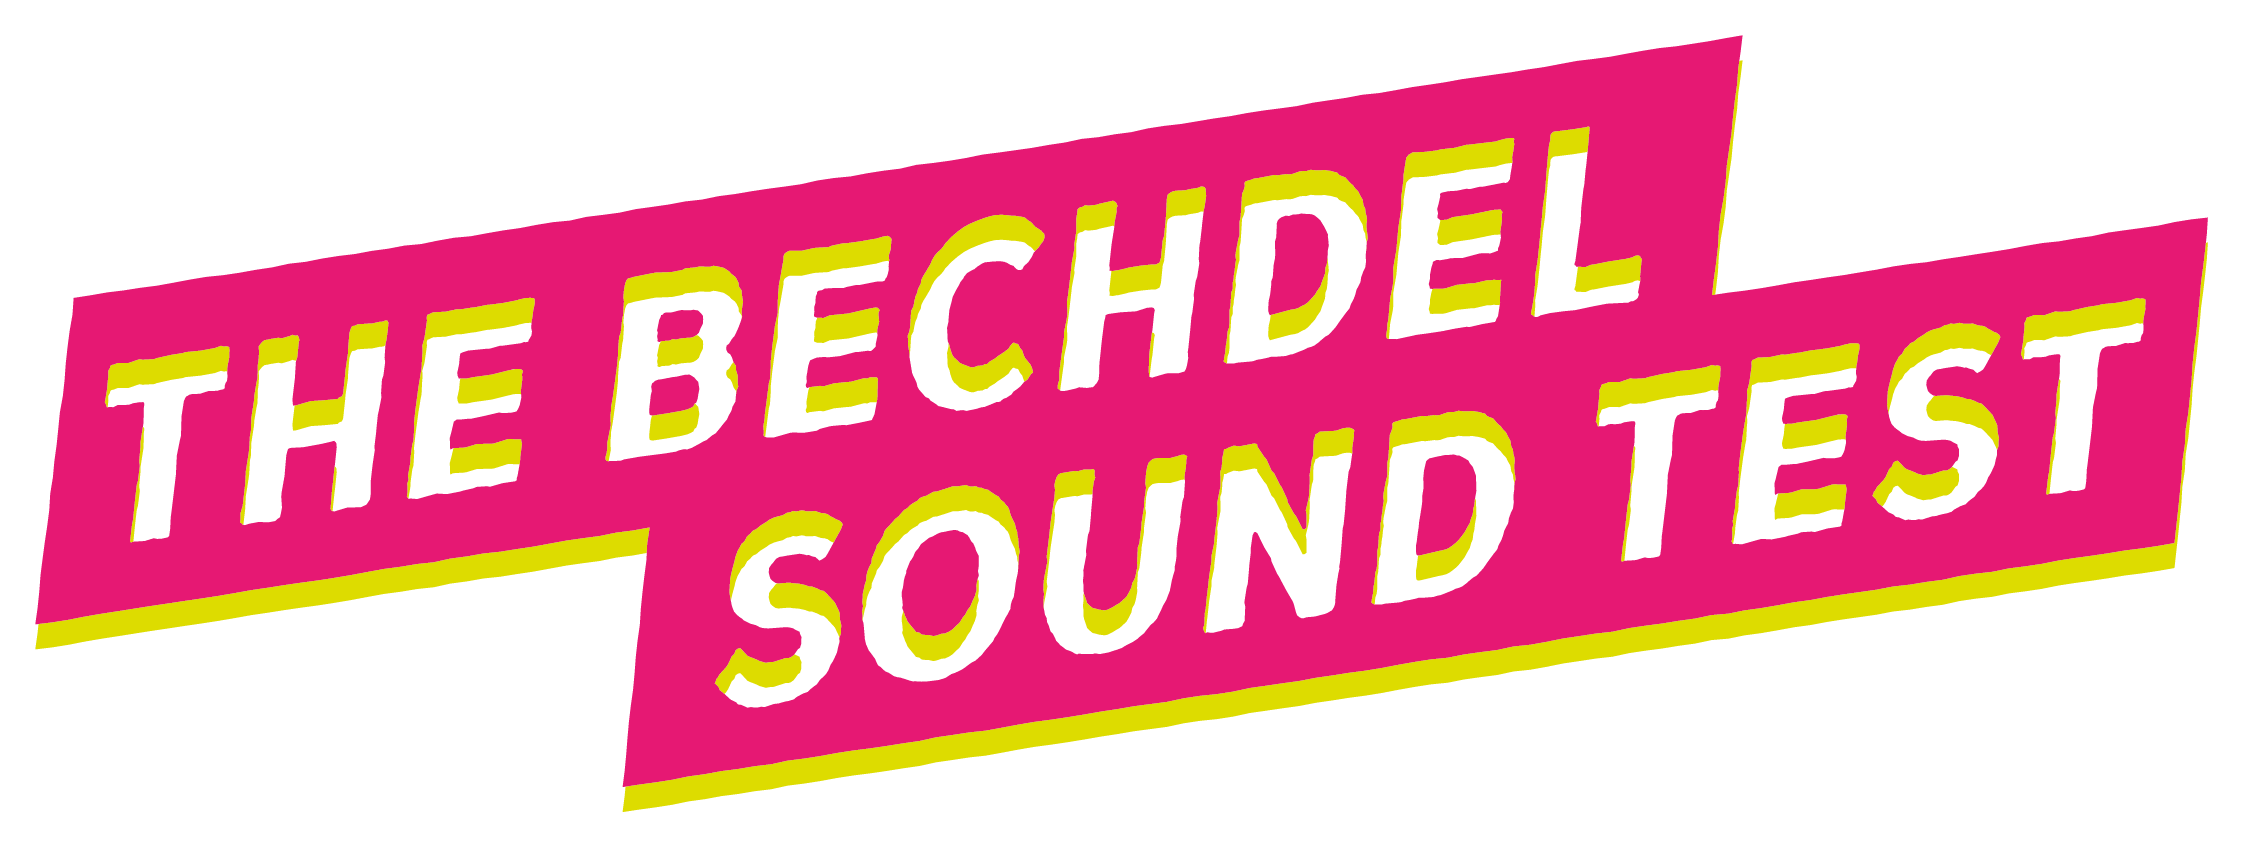 The Bechdel Sound Test